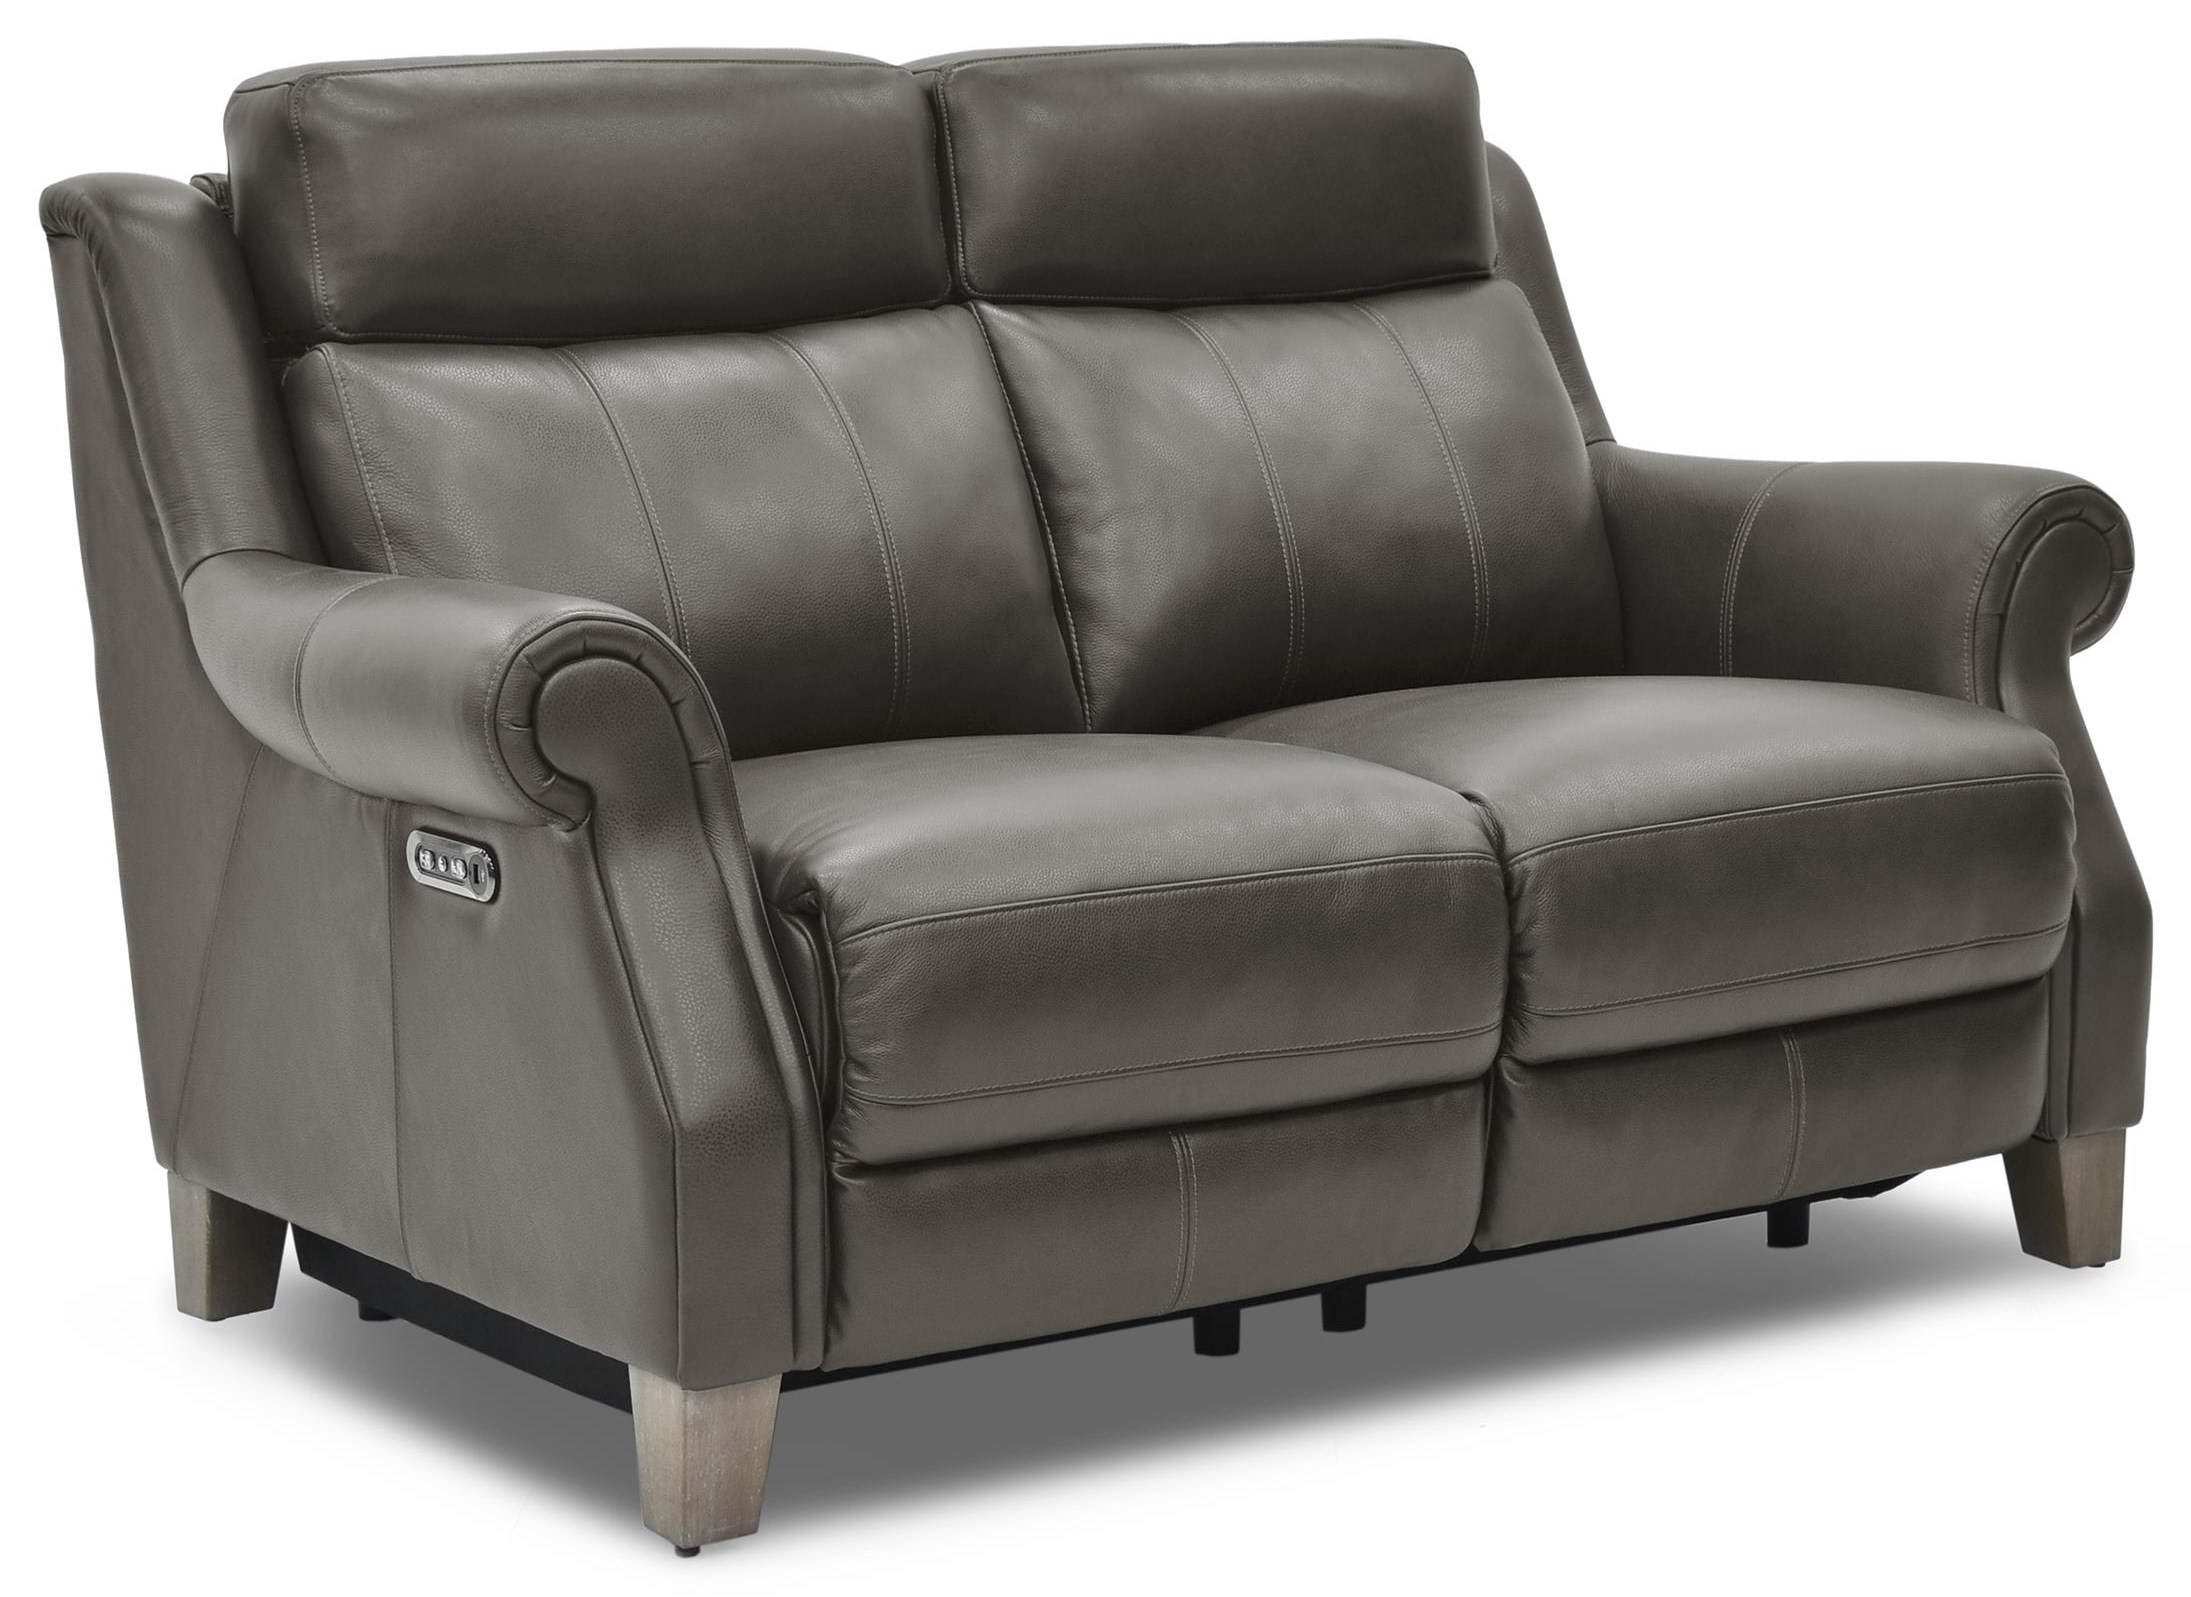 Via Power Reclining Leather Loveseat at Rotmans